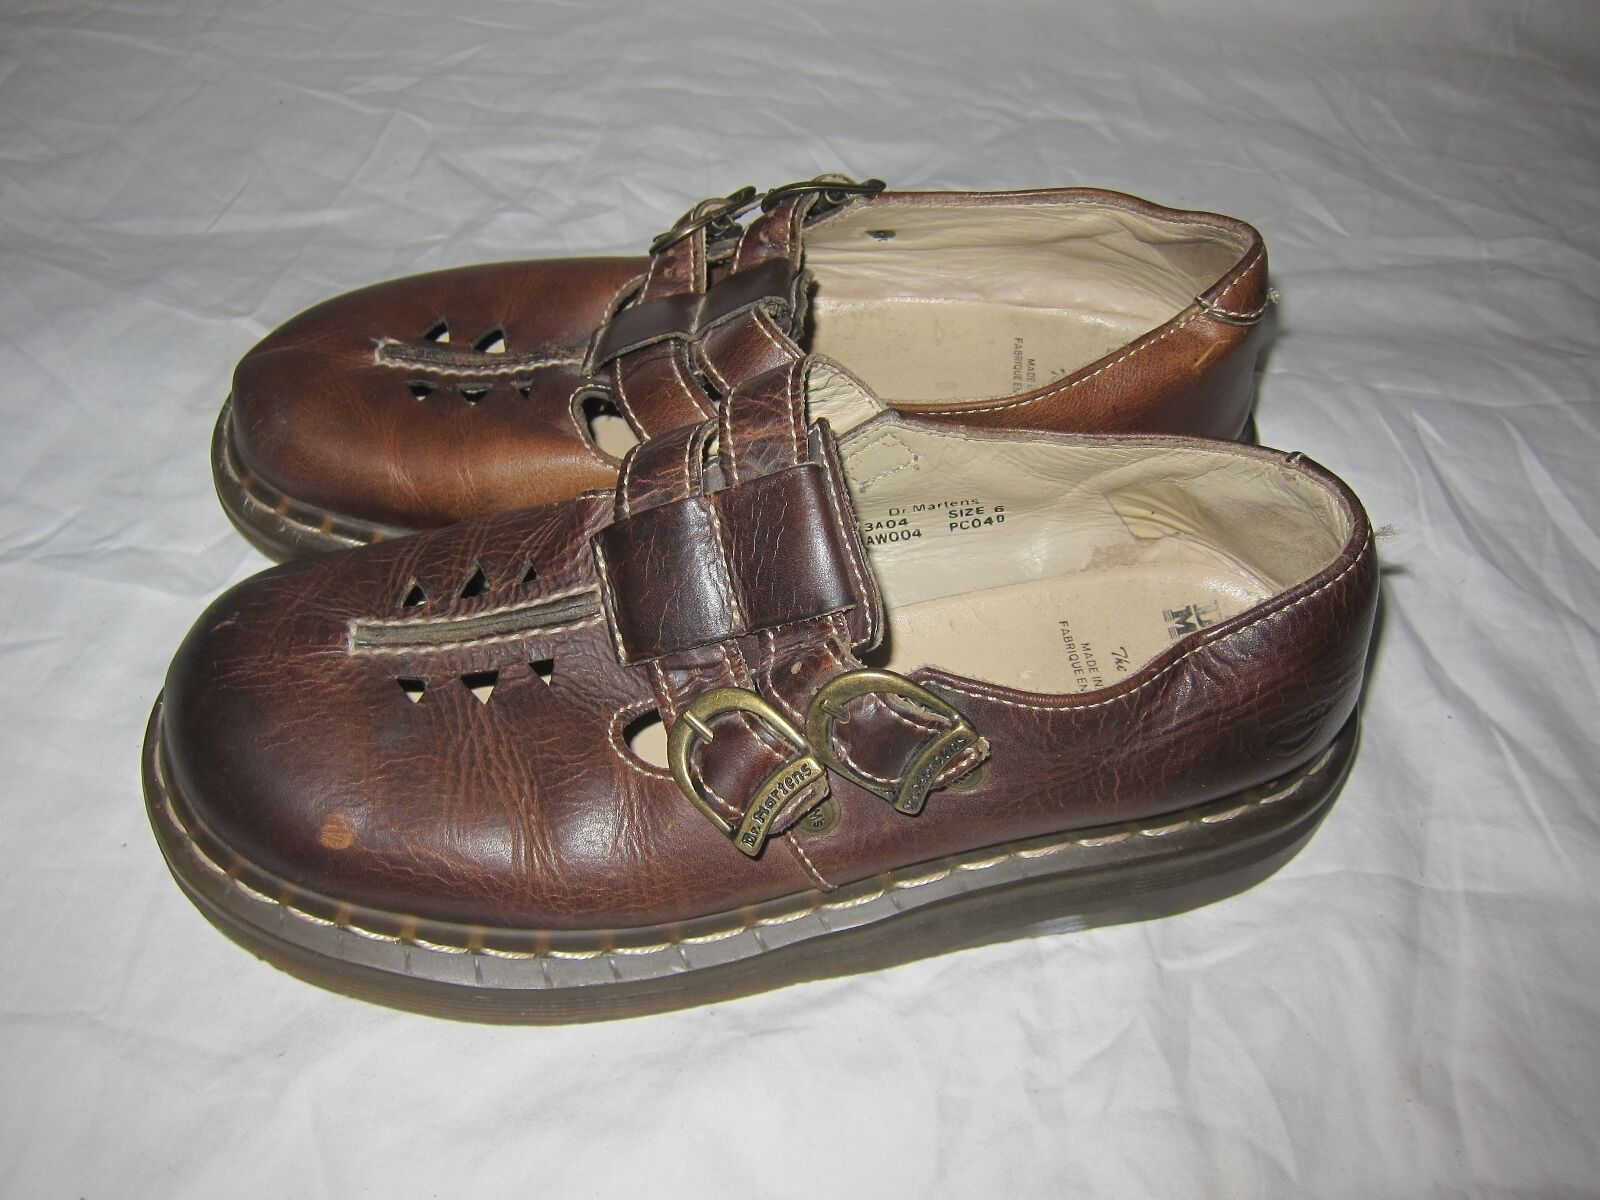 Dr. Marten Dark Brown Leather Women's Double Strap Mary Jane  US 8 England